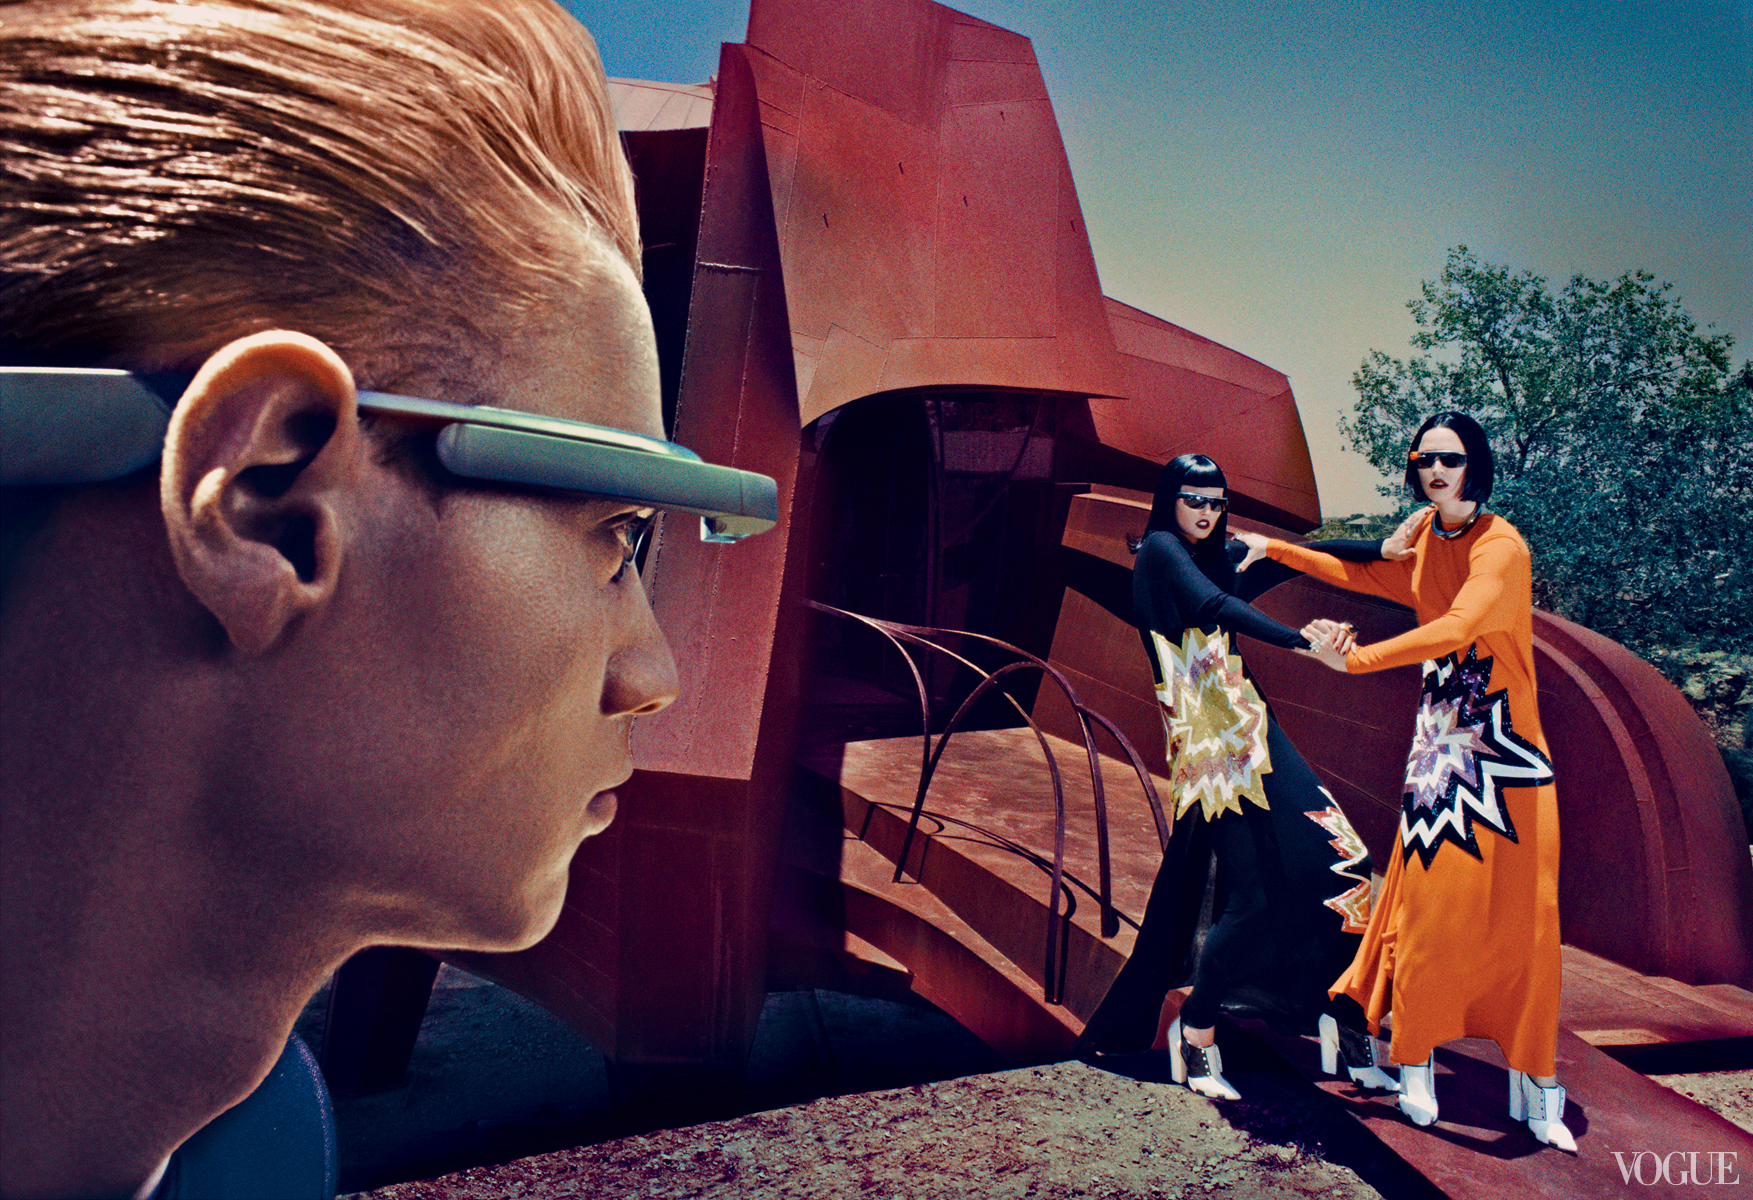 Vogue September 2013  Raquel Zimmermann  Photographed by Steven Klein  Styled by Tonne Goodman